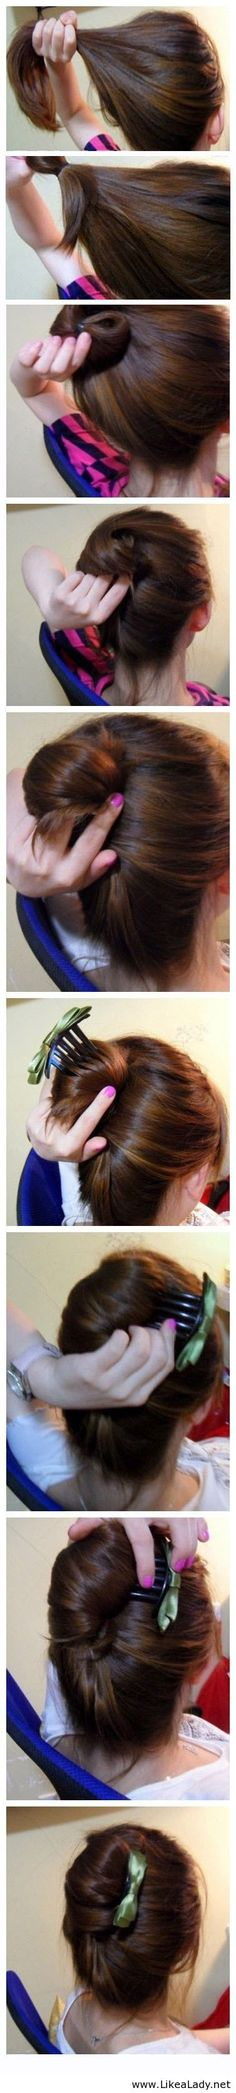 Beautiful hairstyle tutorial with a cute hair accessory